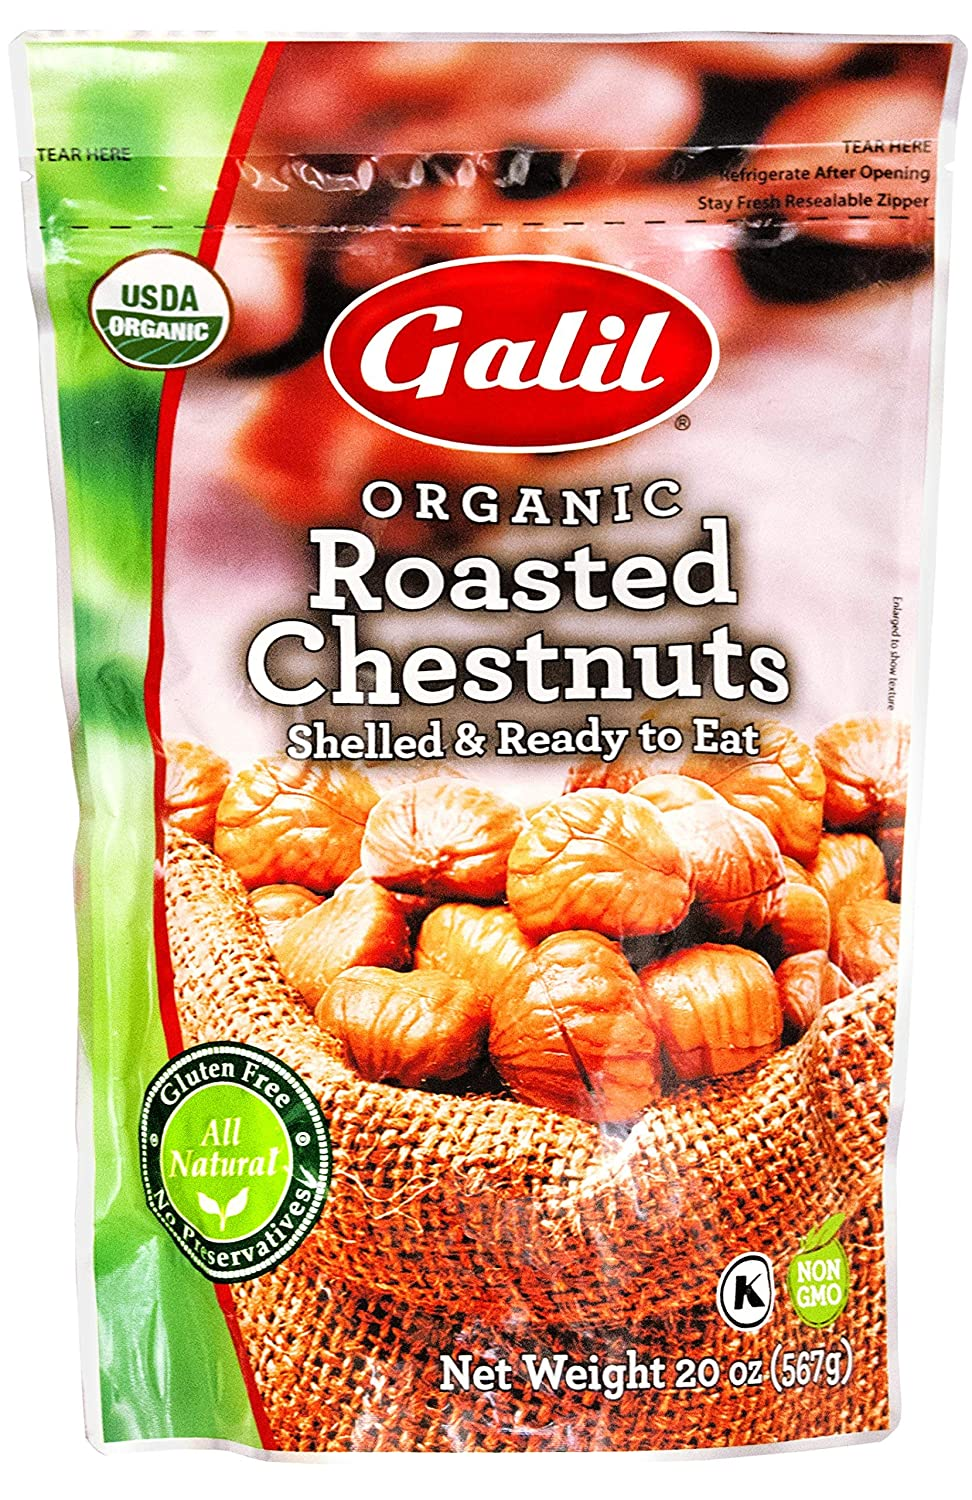 Wholesale Galil Organic Roasted Chestnuts - New mail order 20-Ounce Pack Bags of 3 Sh